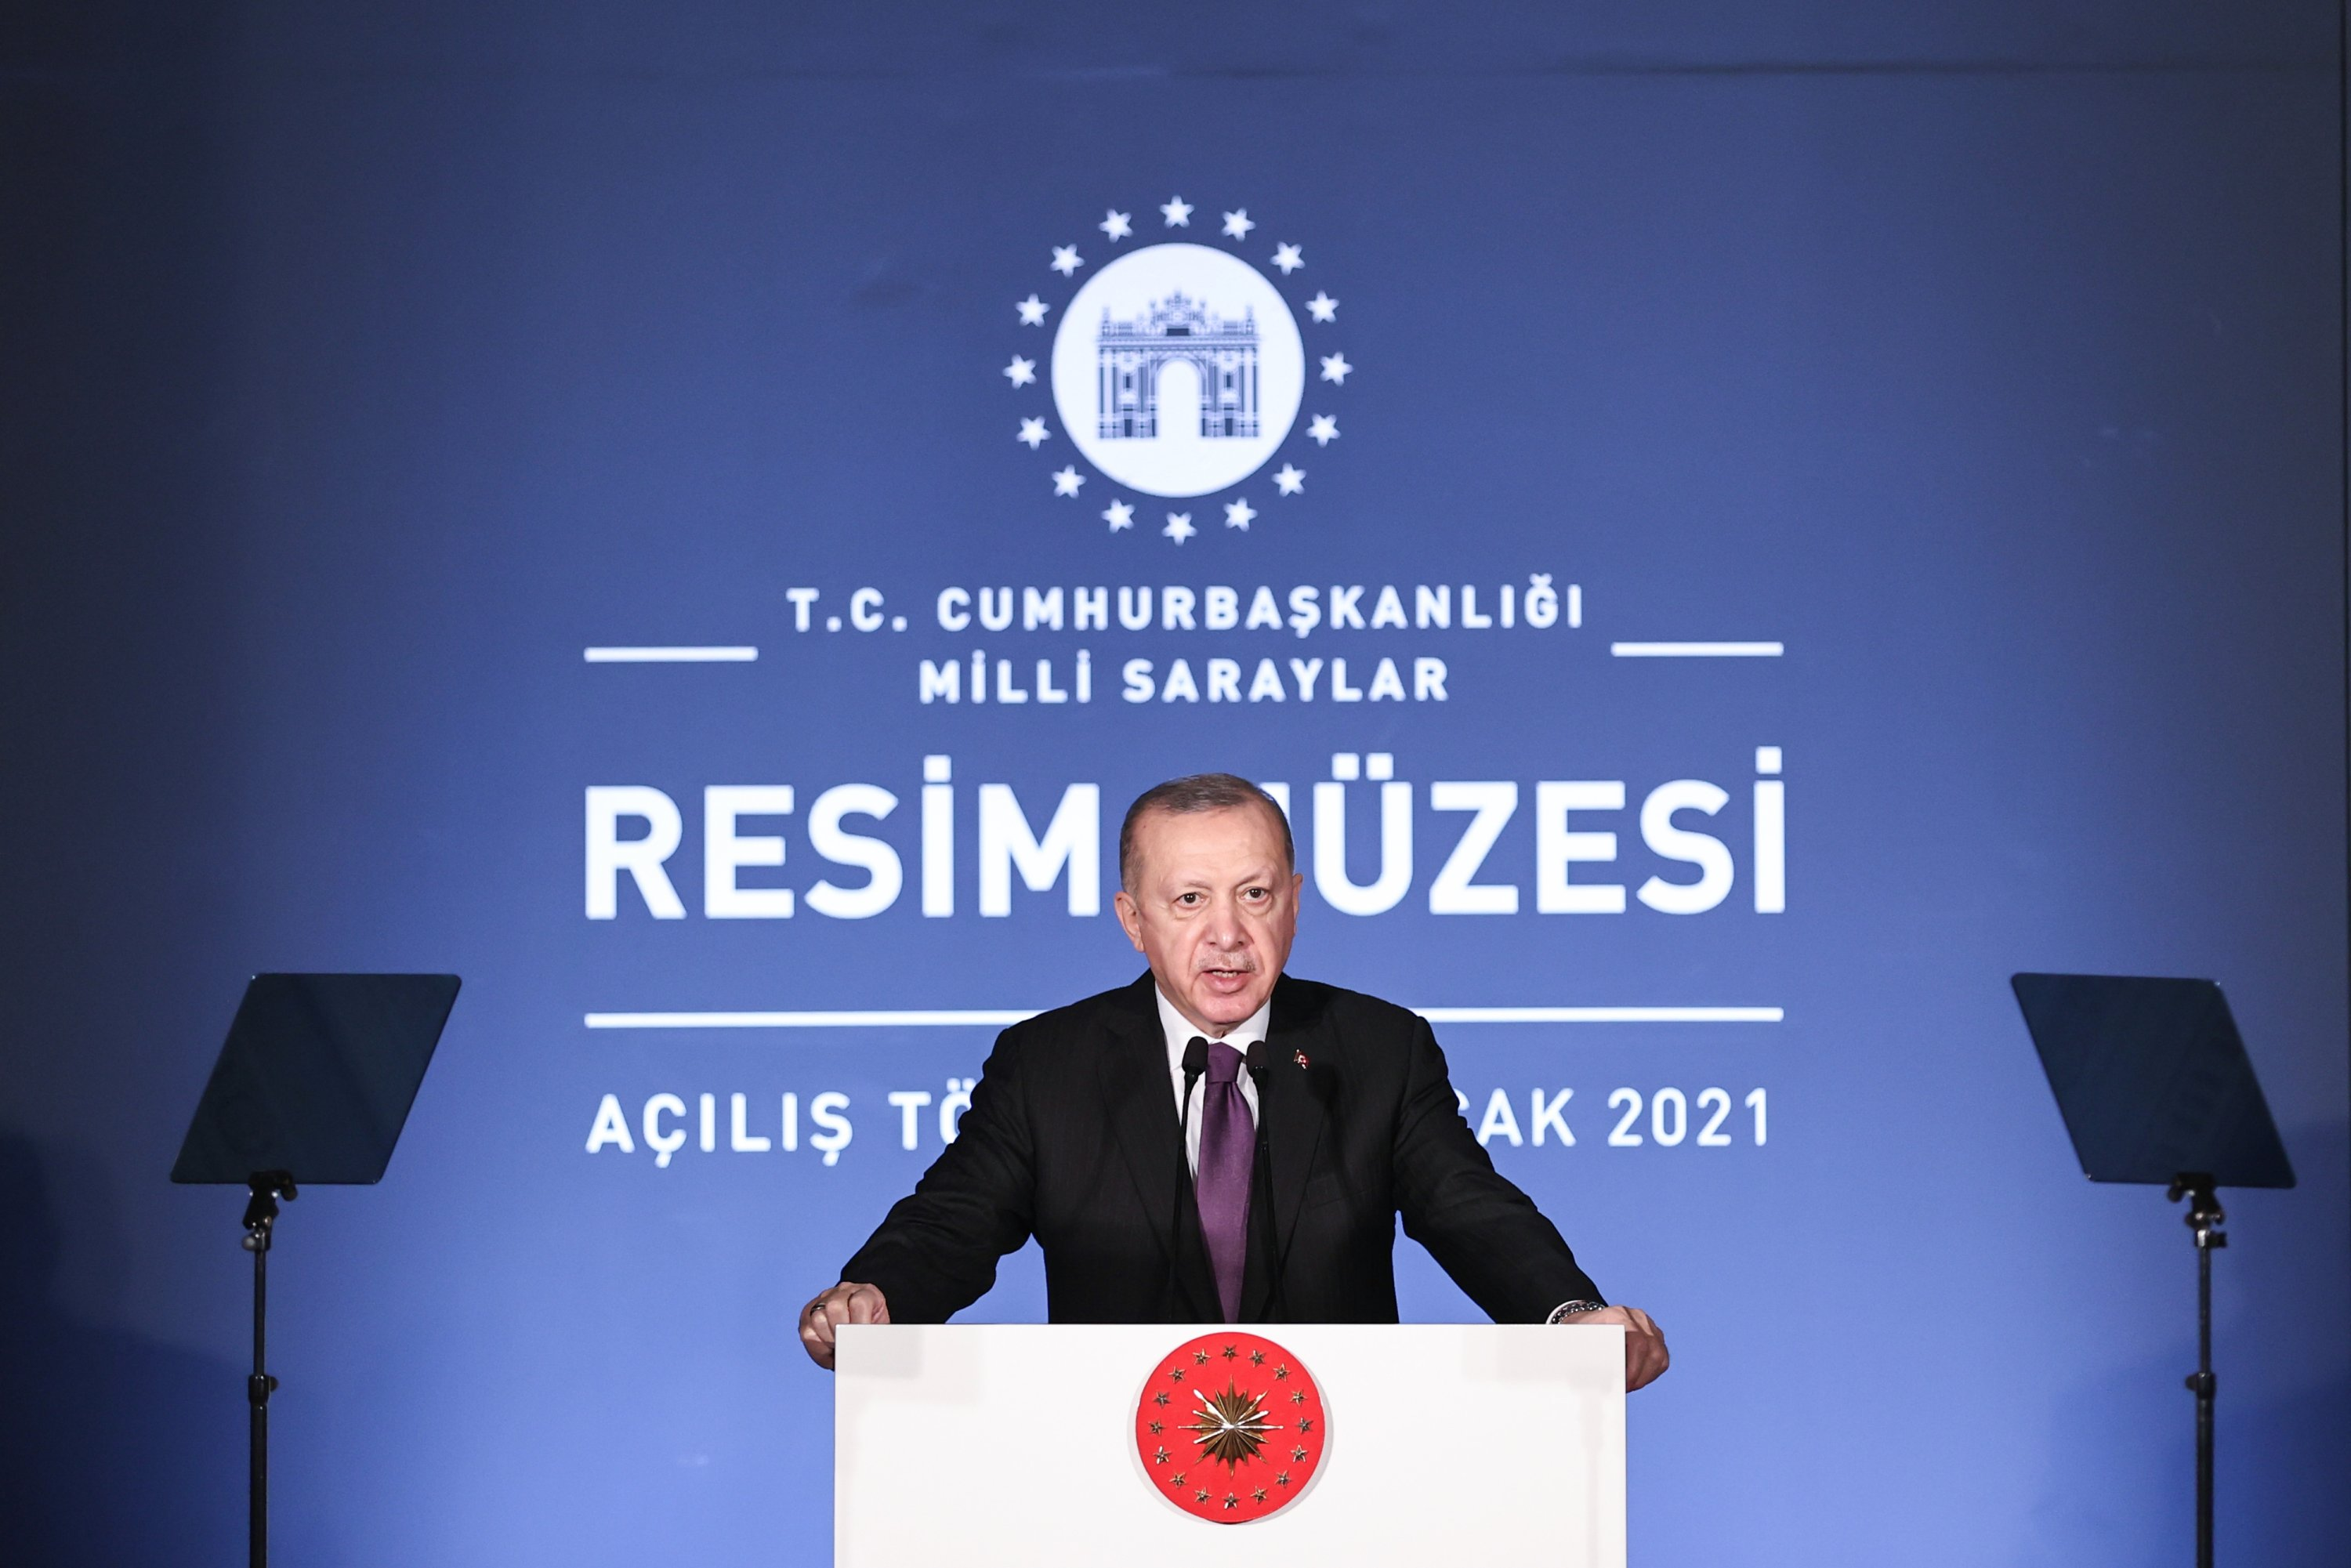 President Recep Tayyip Erdoğan speaks at the opening of the Painting Museum, Dolmabahçe Palace, Istanbul, Turkey, Jan. 15, 2020. (AA Photo)